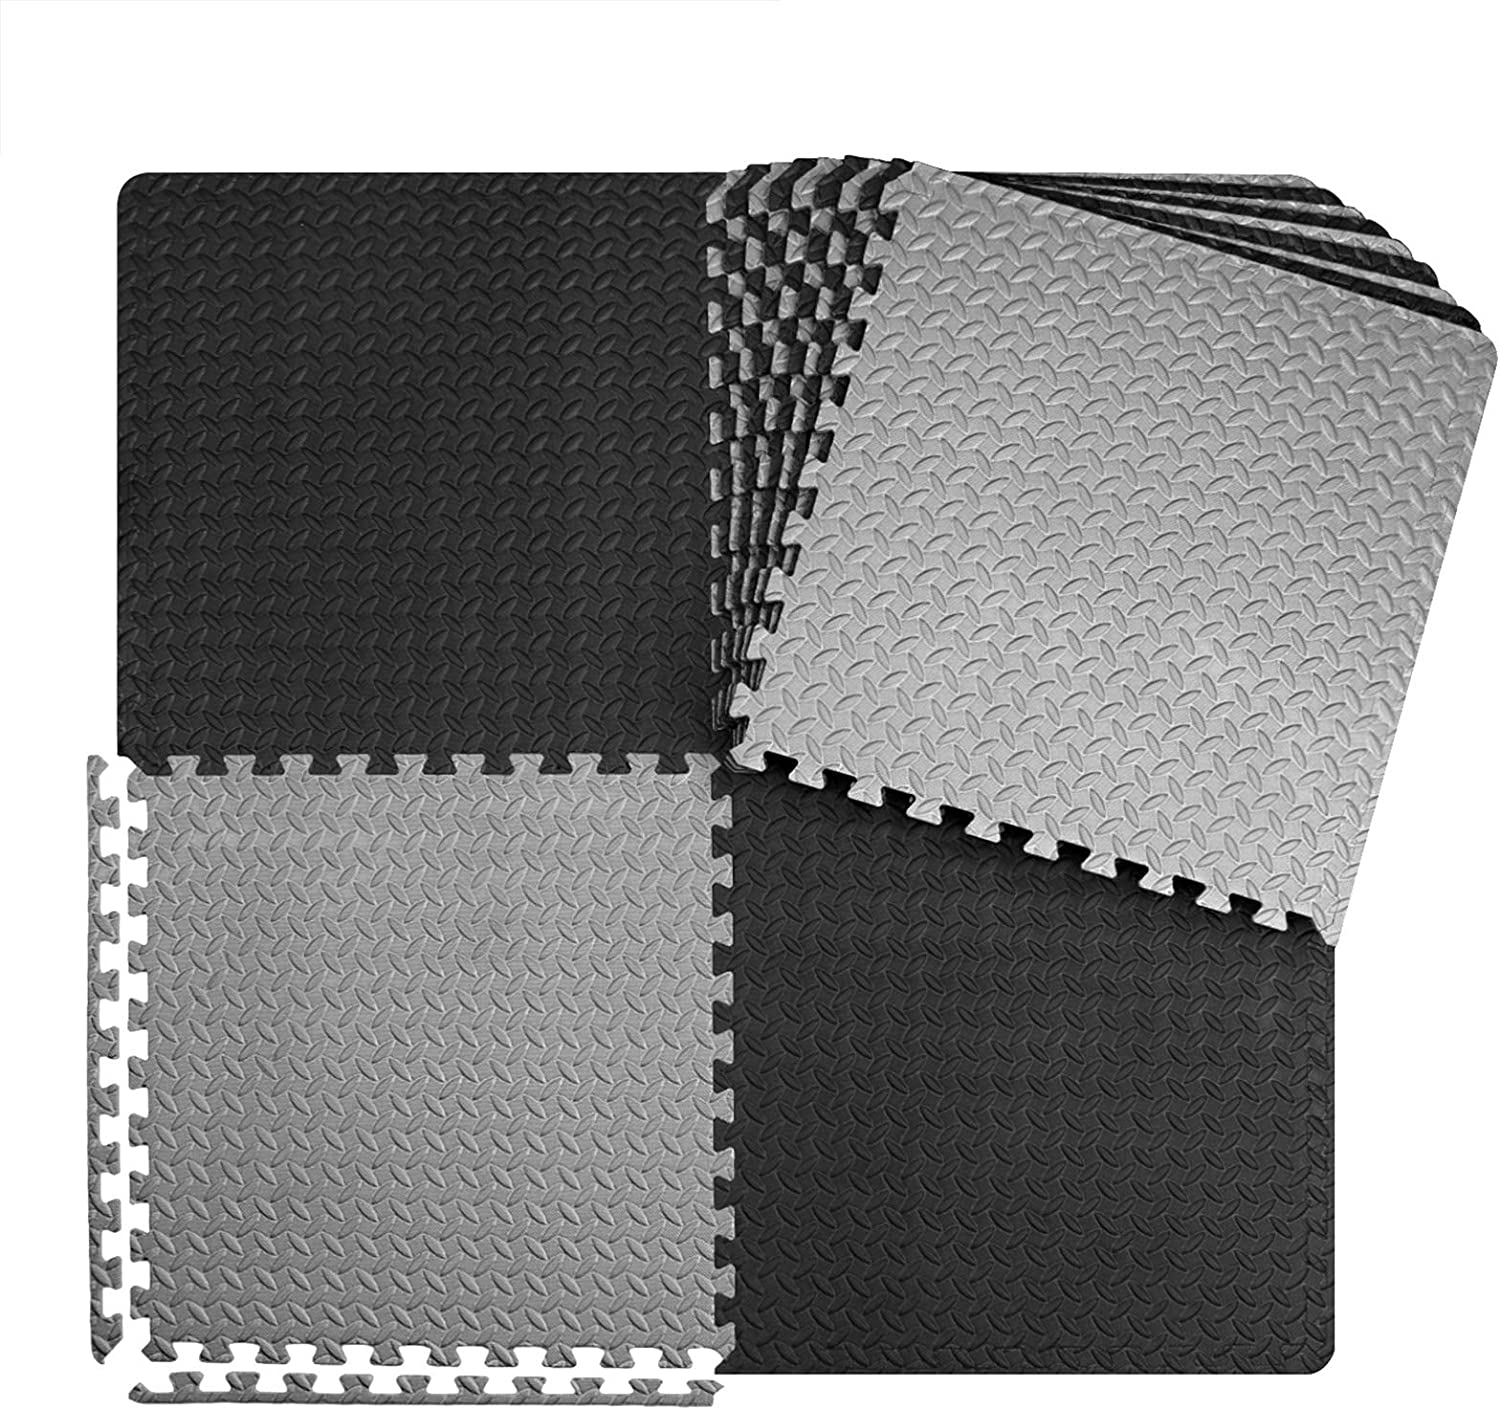 Innhom Interlocking Foam Mats